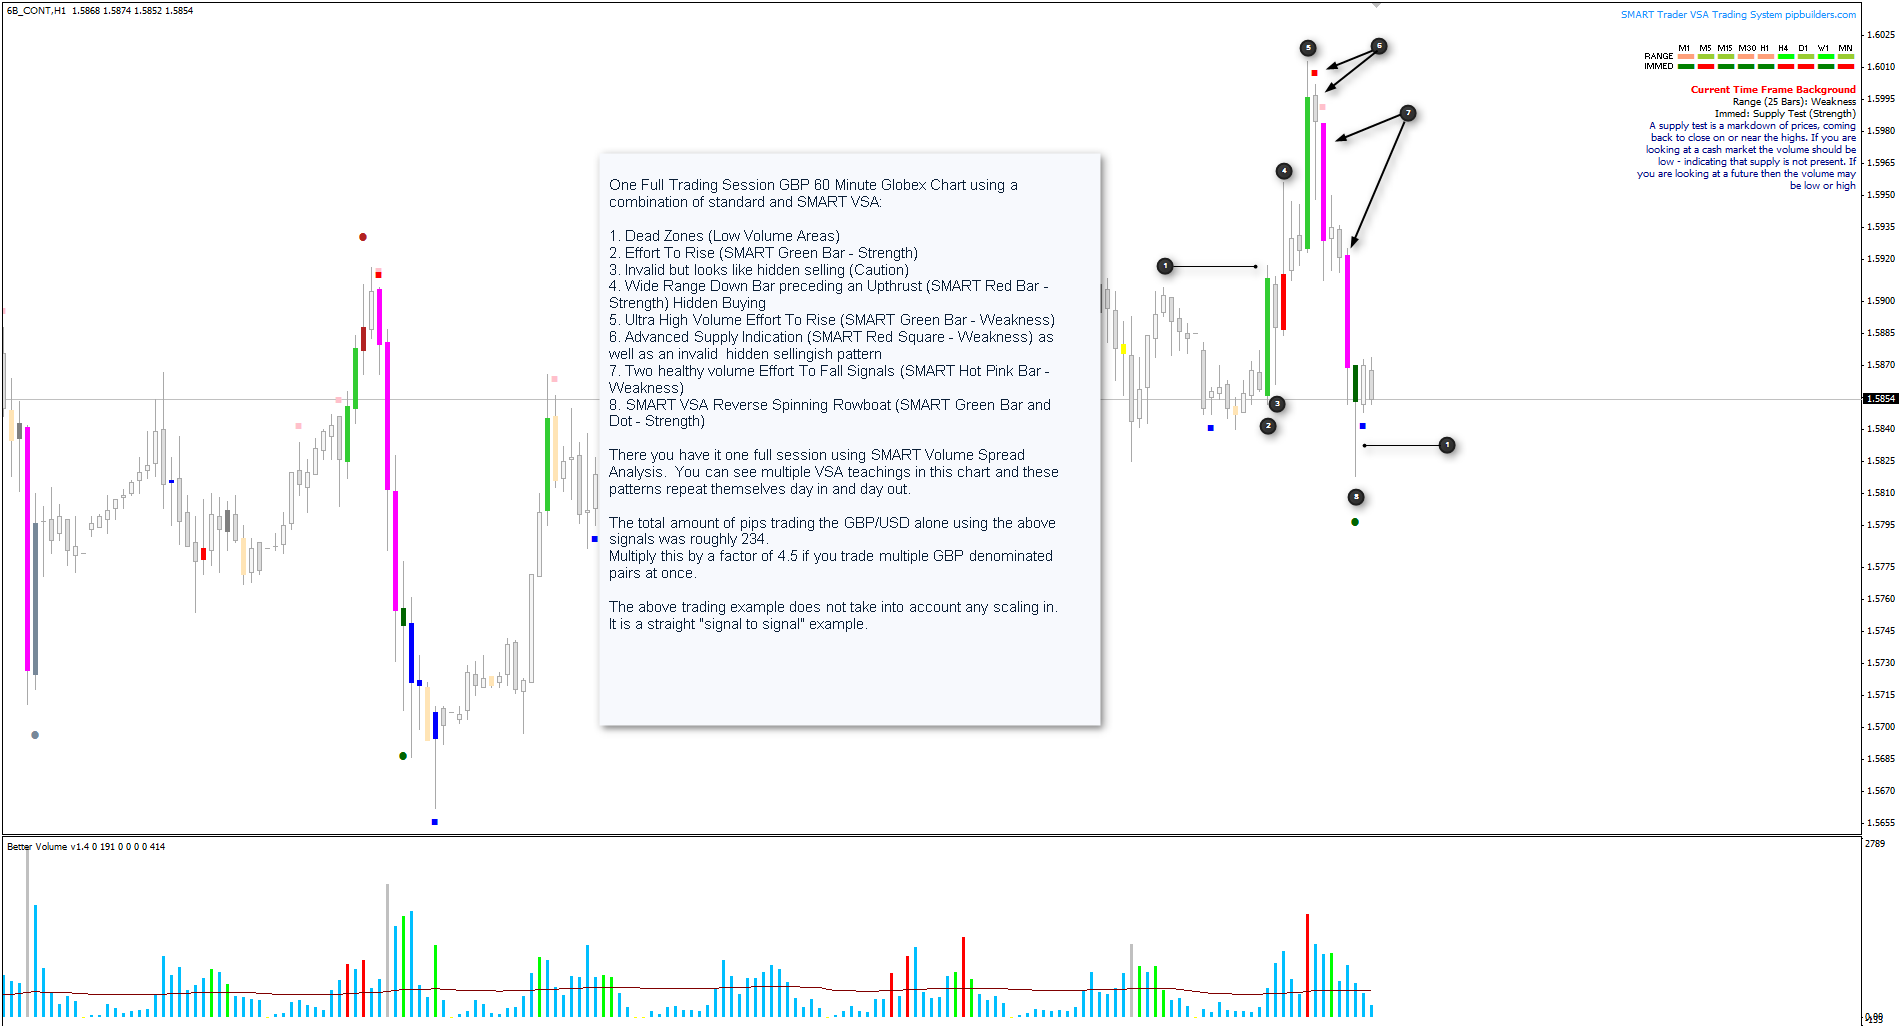 One Full Trading Session Using SMART Volume Spread Analysis Software